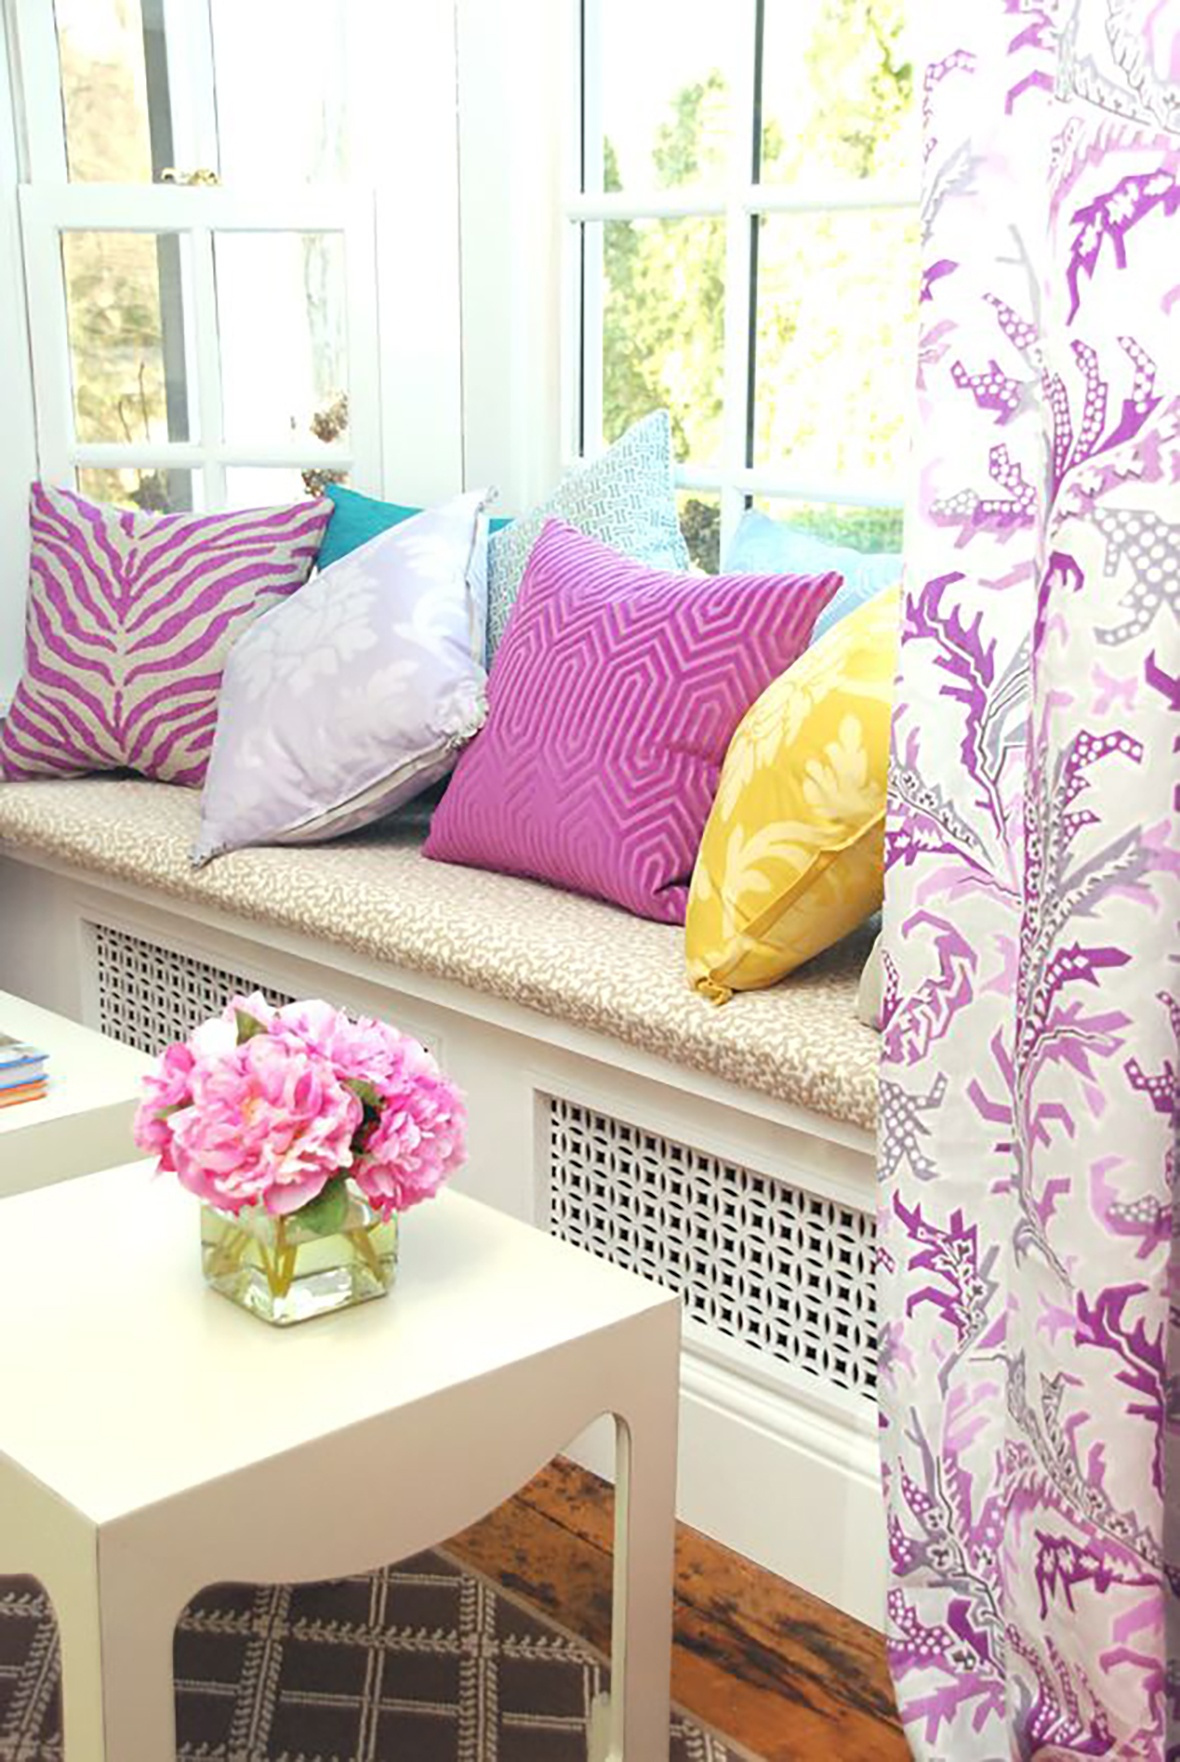 14-radiator-cover-window-seat-with-pillows_01